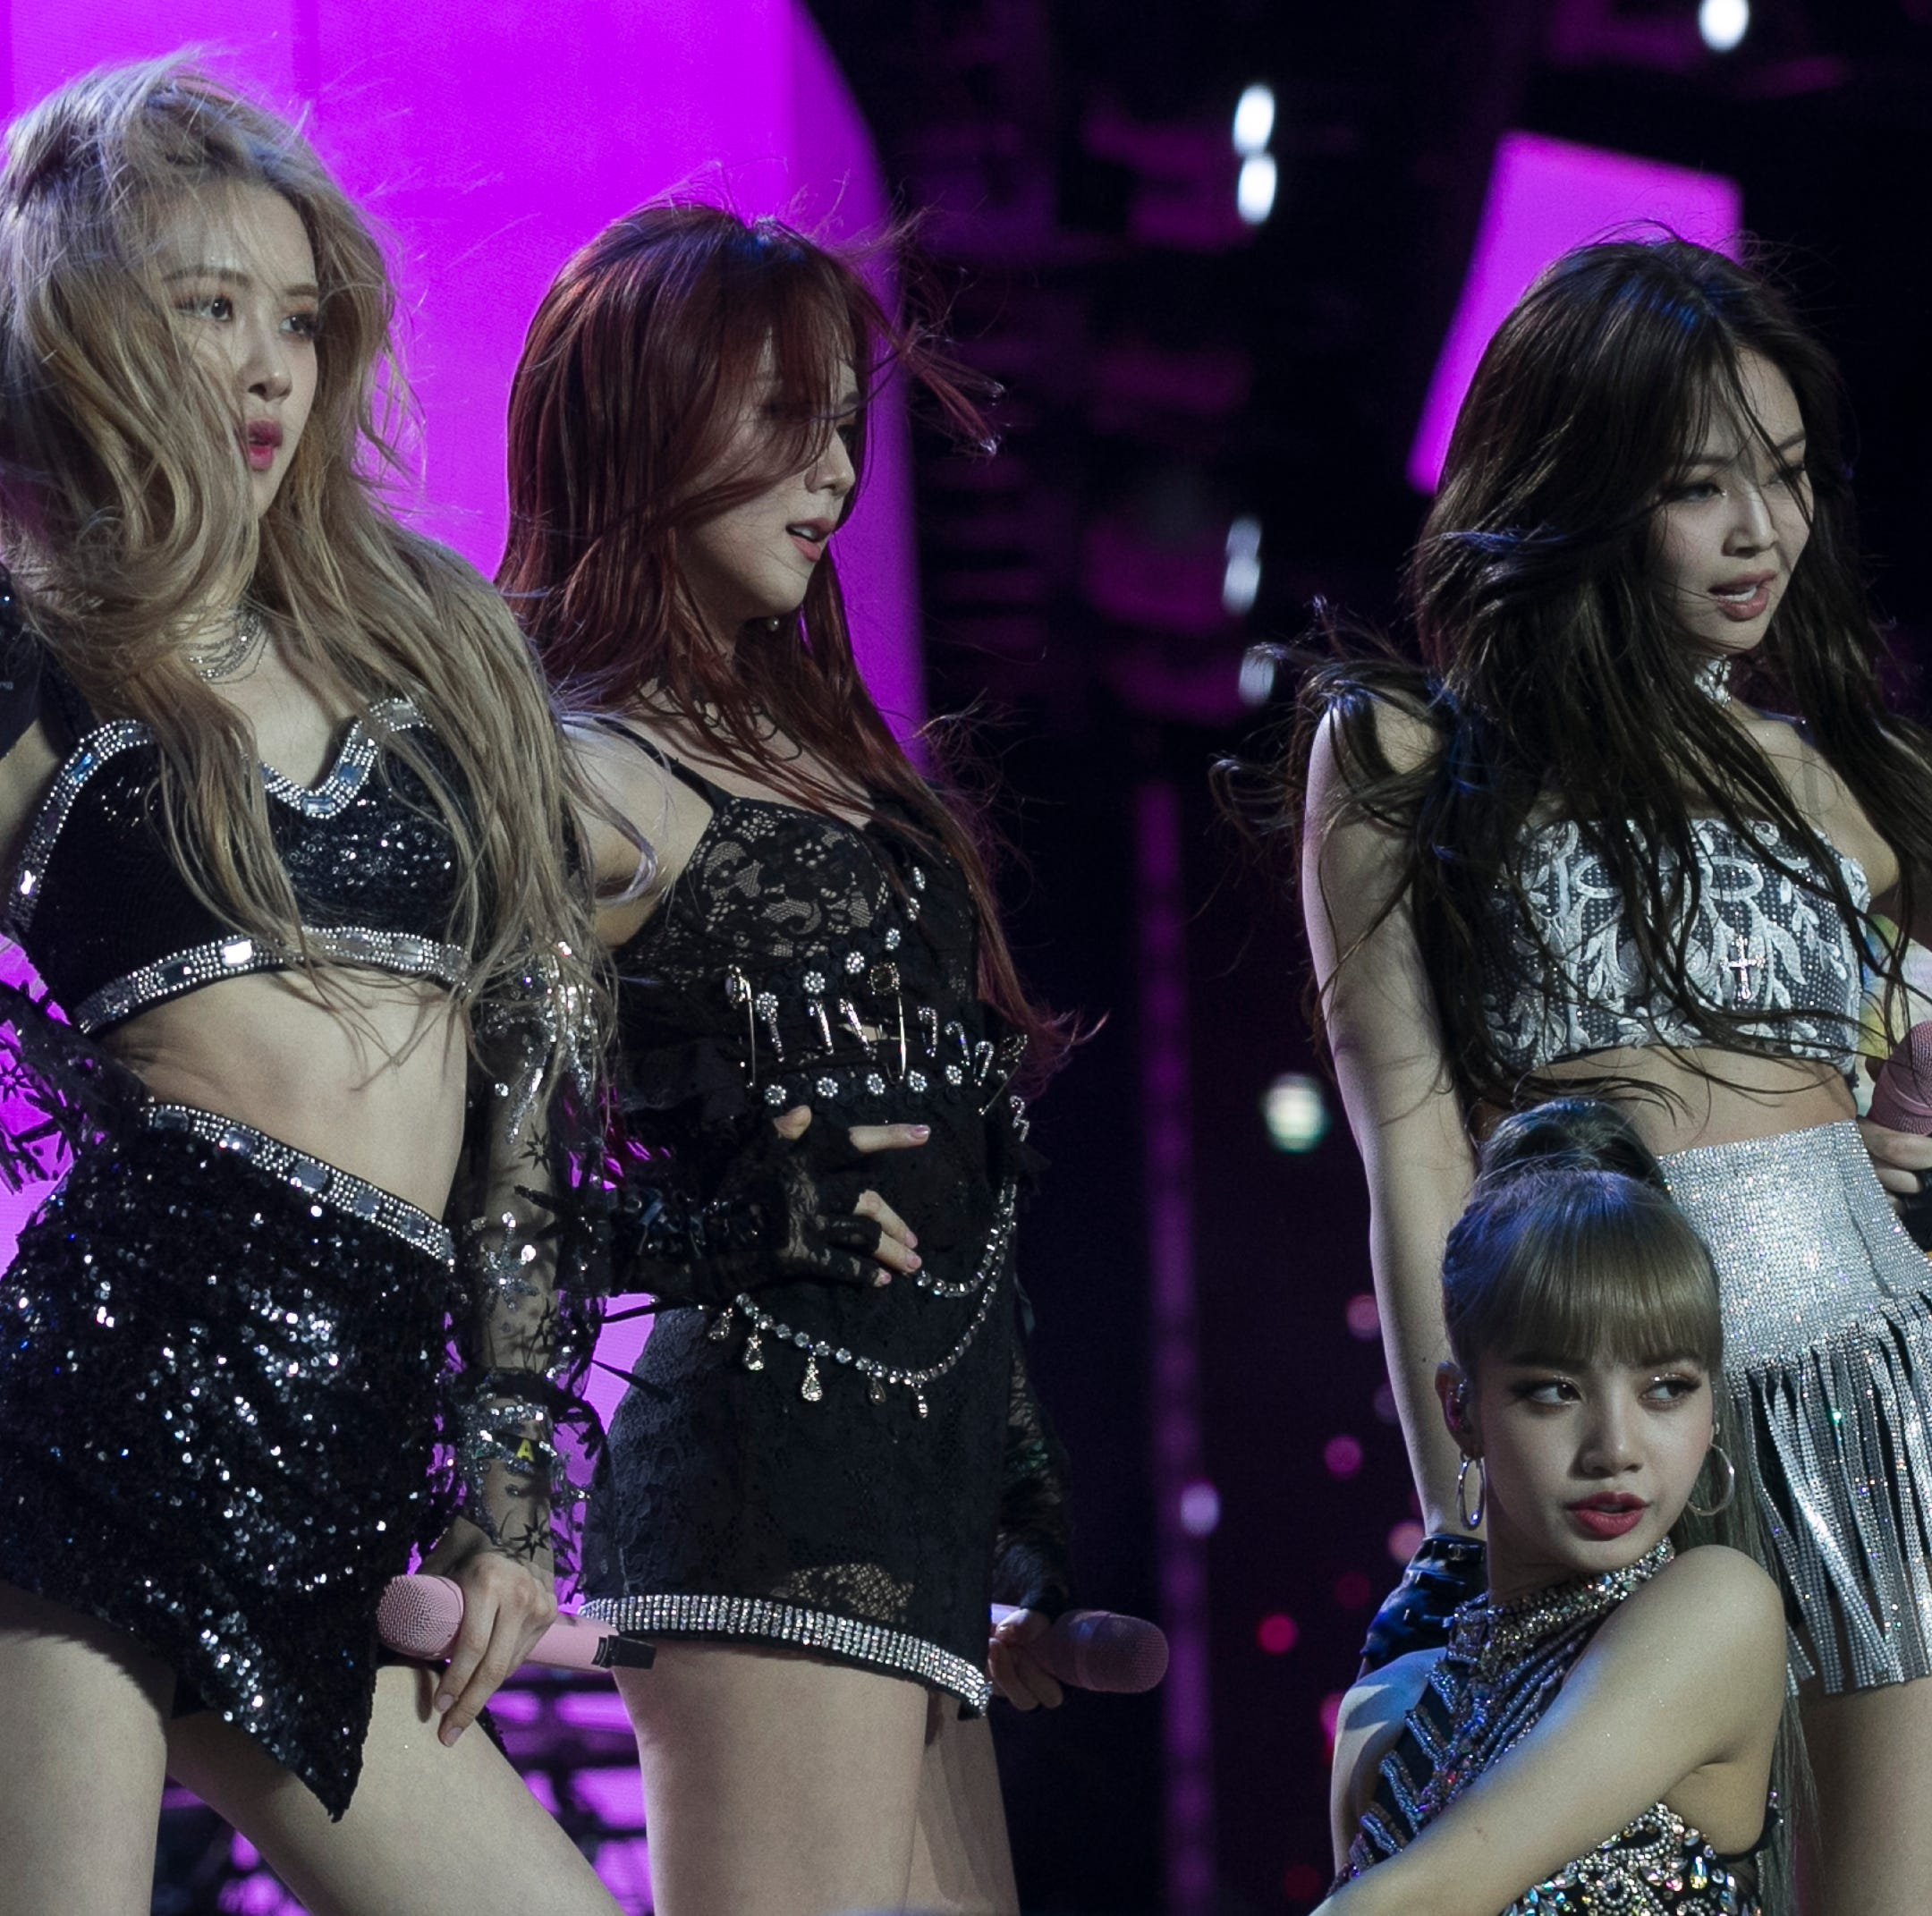 BLACKPINK performs instant replay of first Coachella set and no one is disappointed